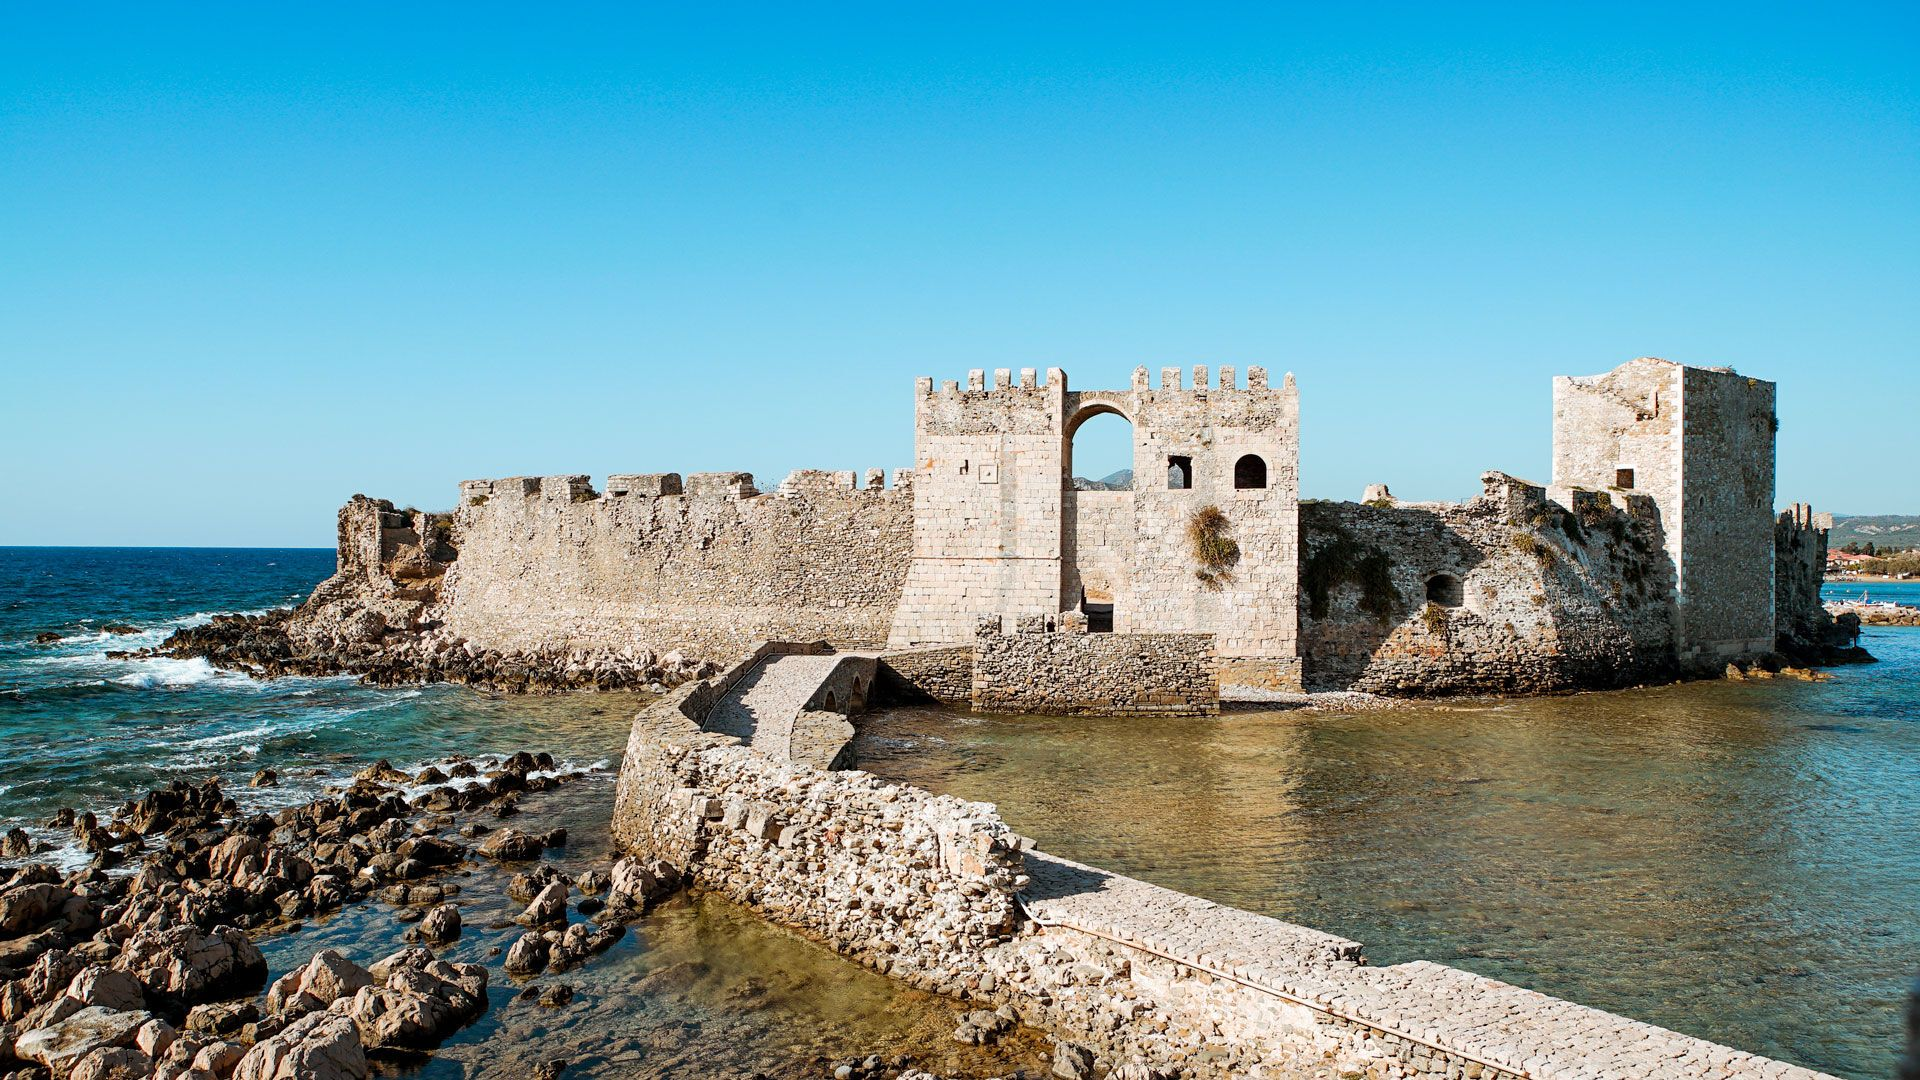 As soon as you set foot on the stone bridge of Methoni Castle, you'll be impressed